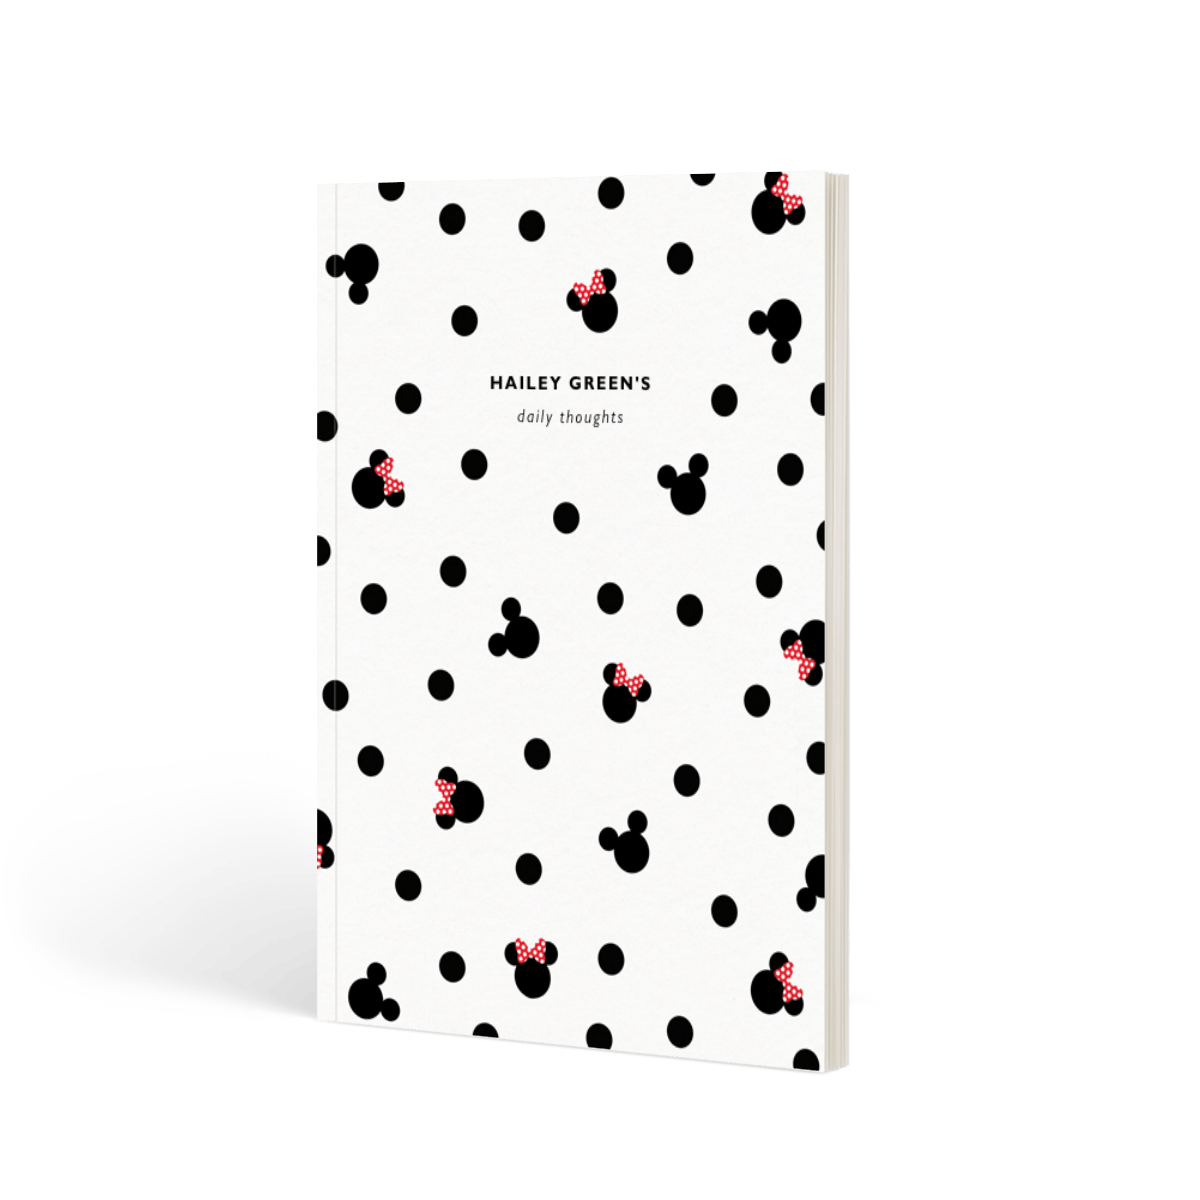 Https%3a%2f%2fwww.papier.com%2fproduct image%2f55821%2f6%2fmickey minnie mouse 13406 front 1569450741.png?ixlib=rb 1.1